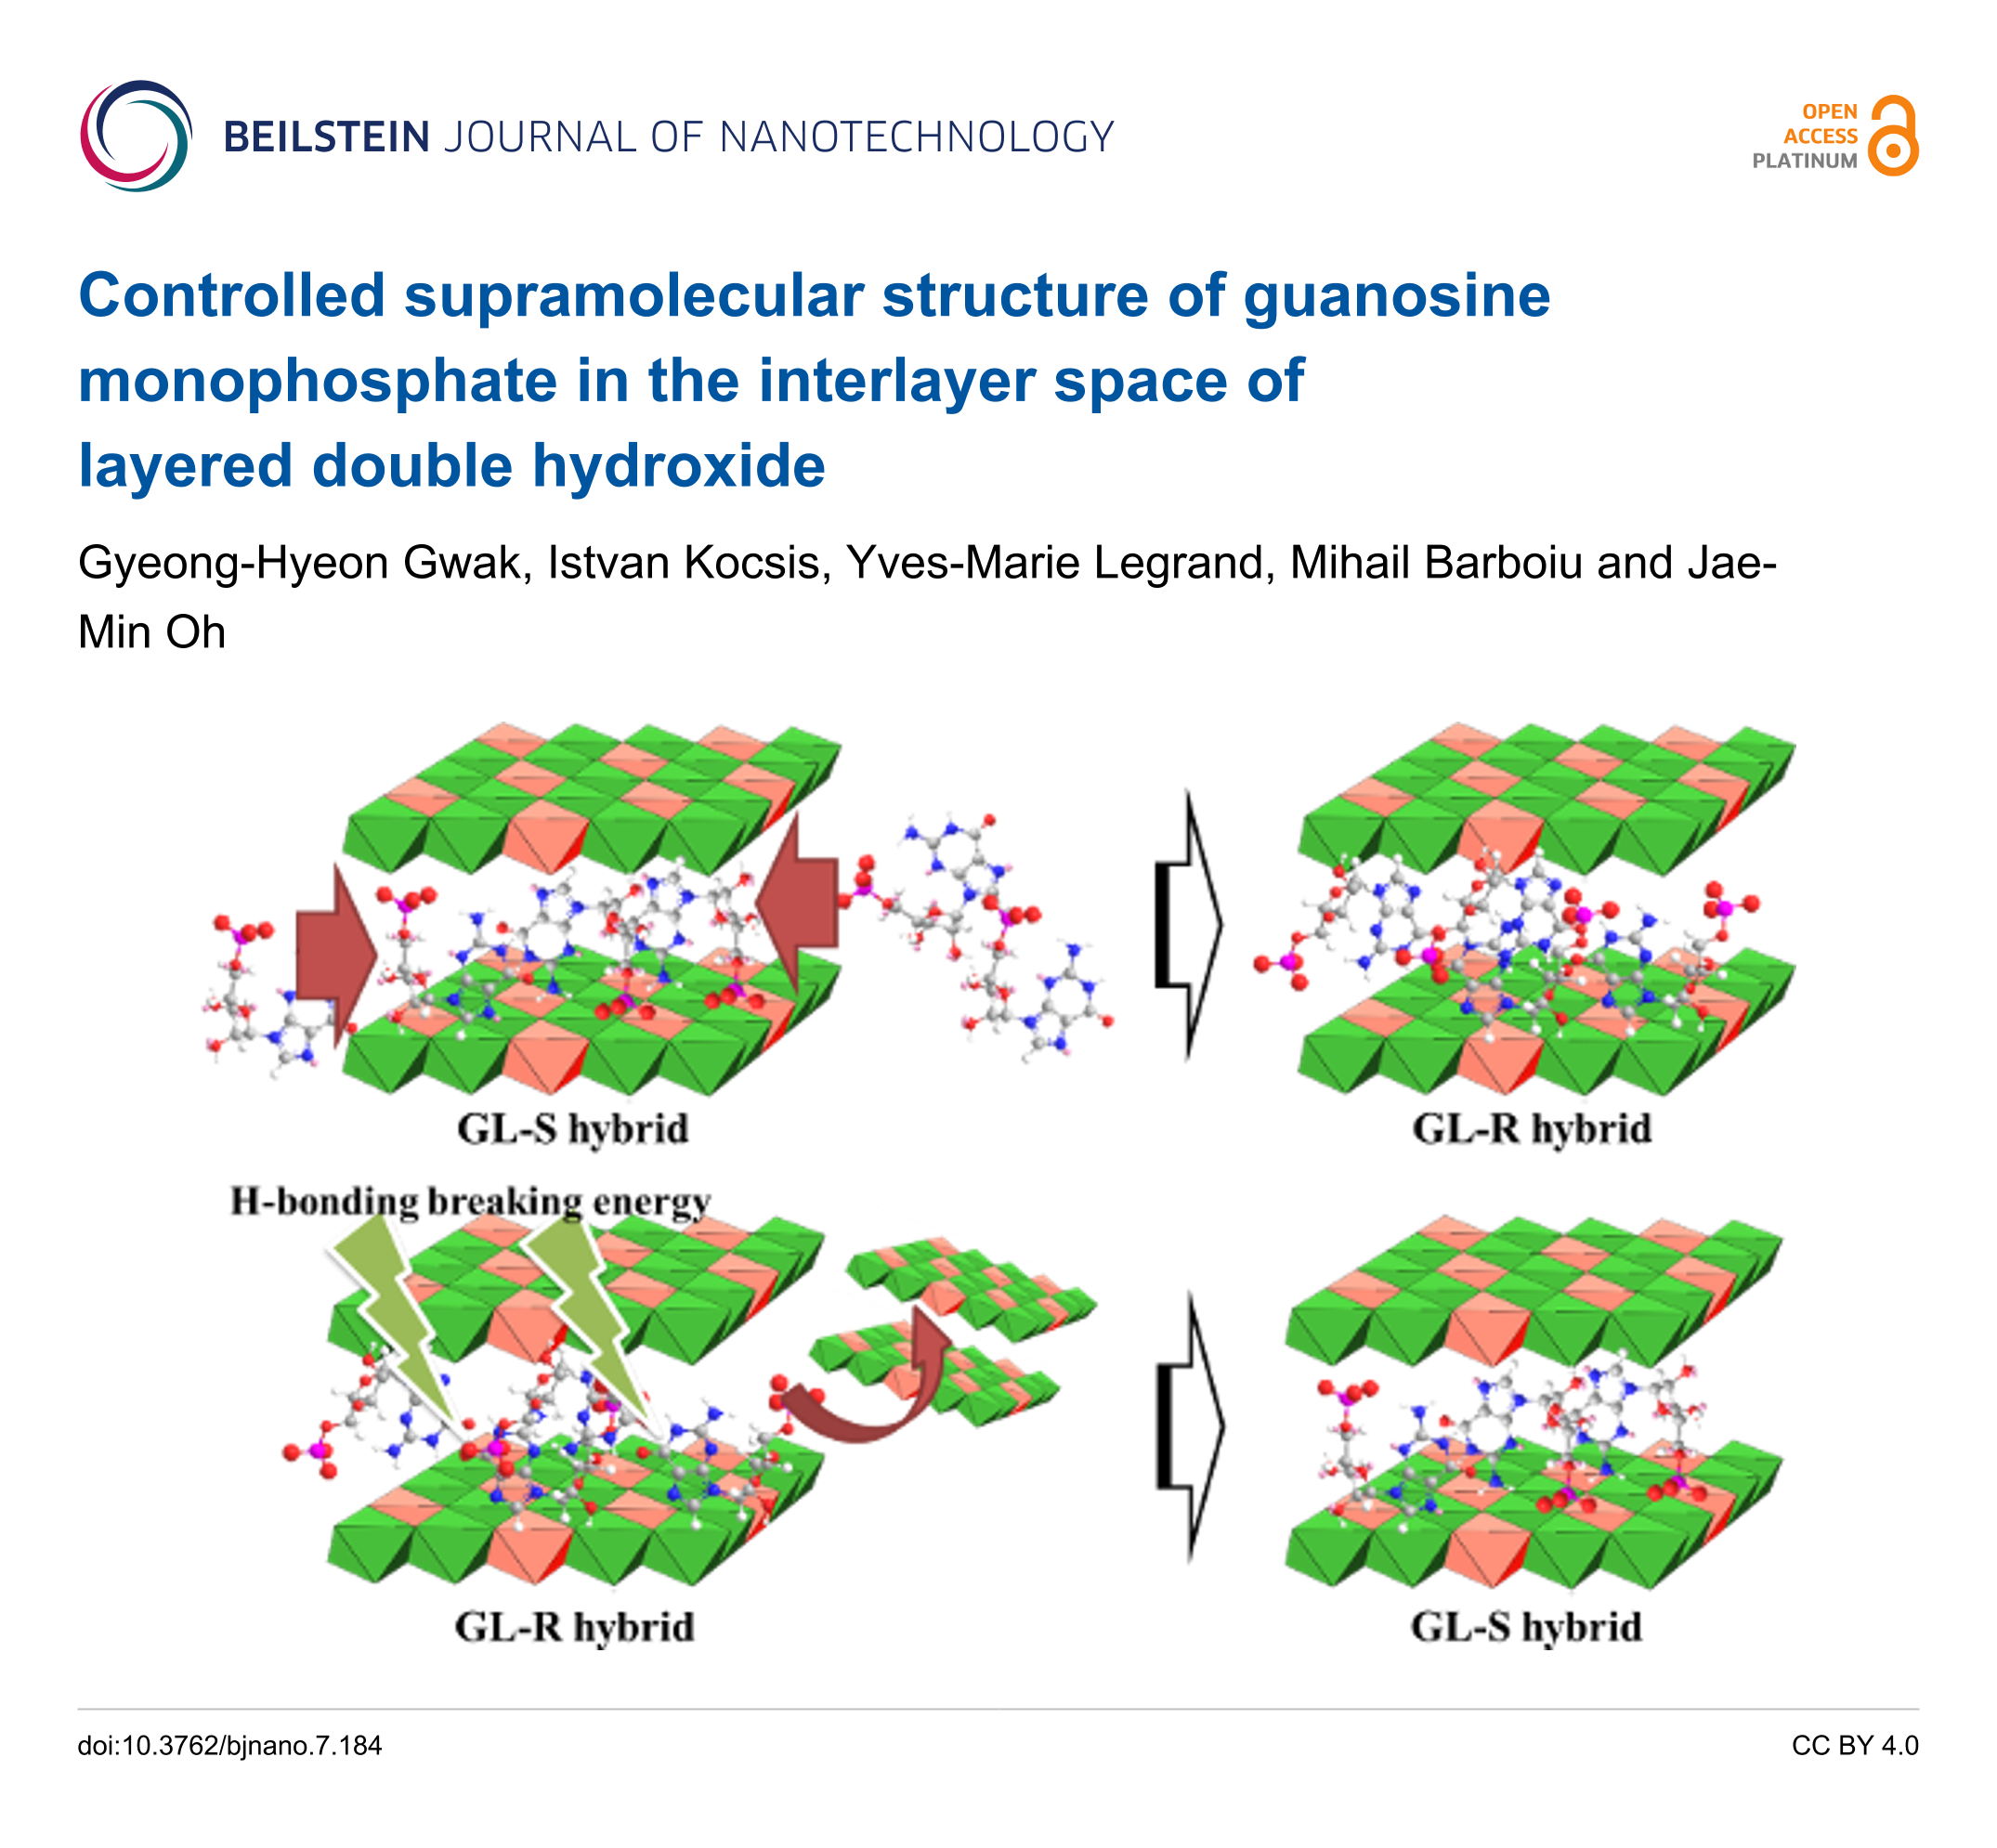 Controlled Supramolecular Structure Of Guanosine Monophosphate In